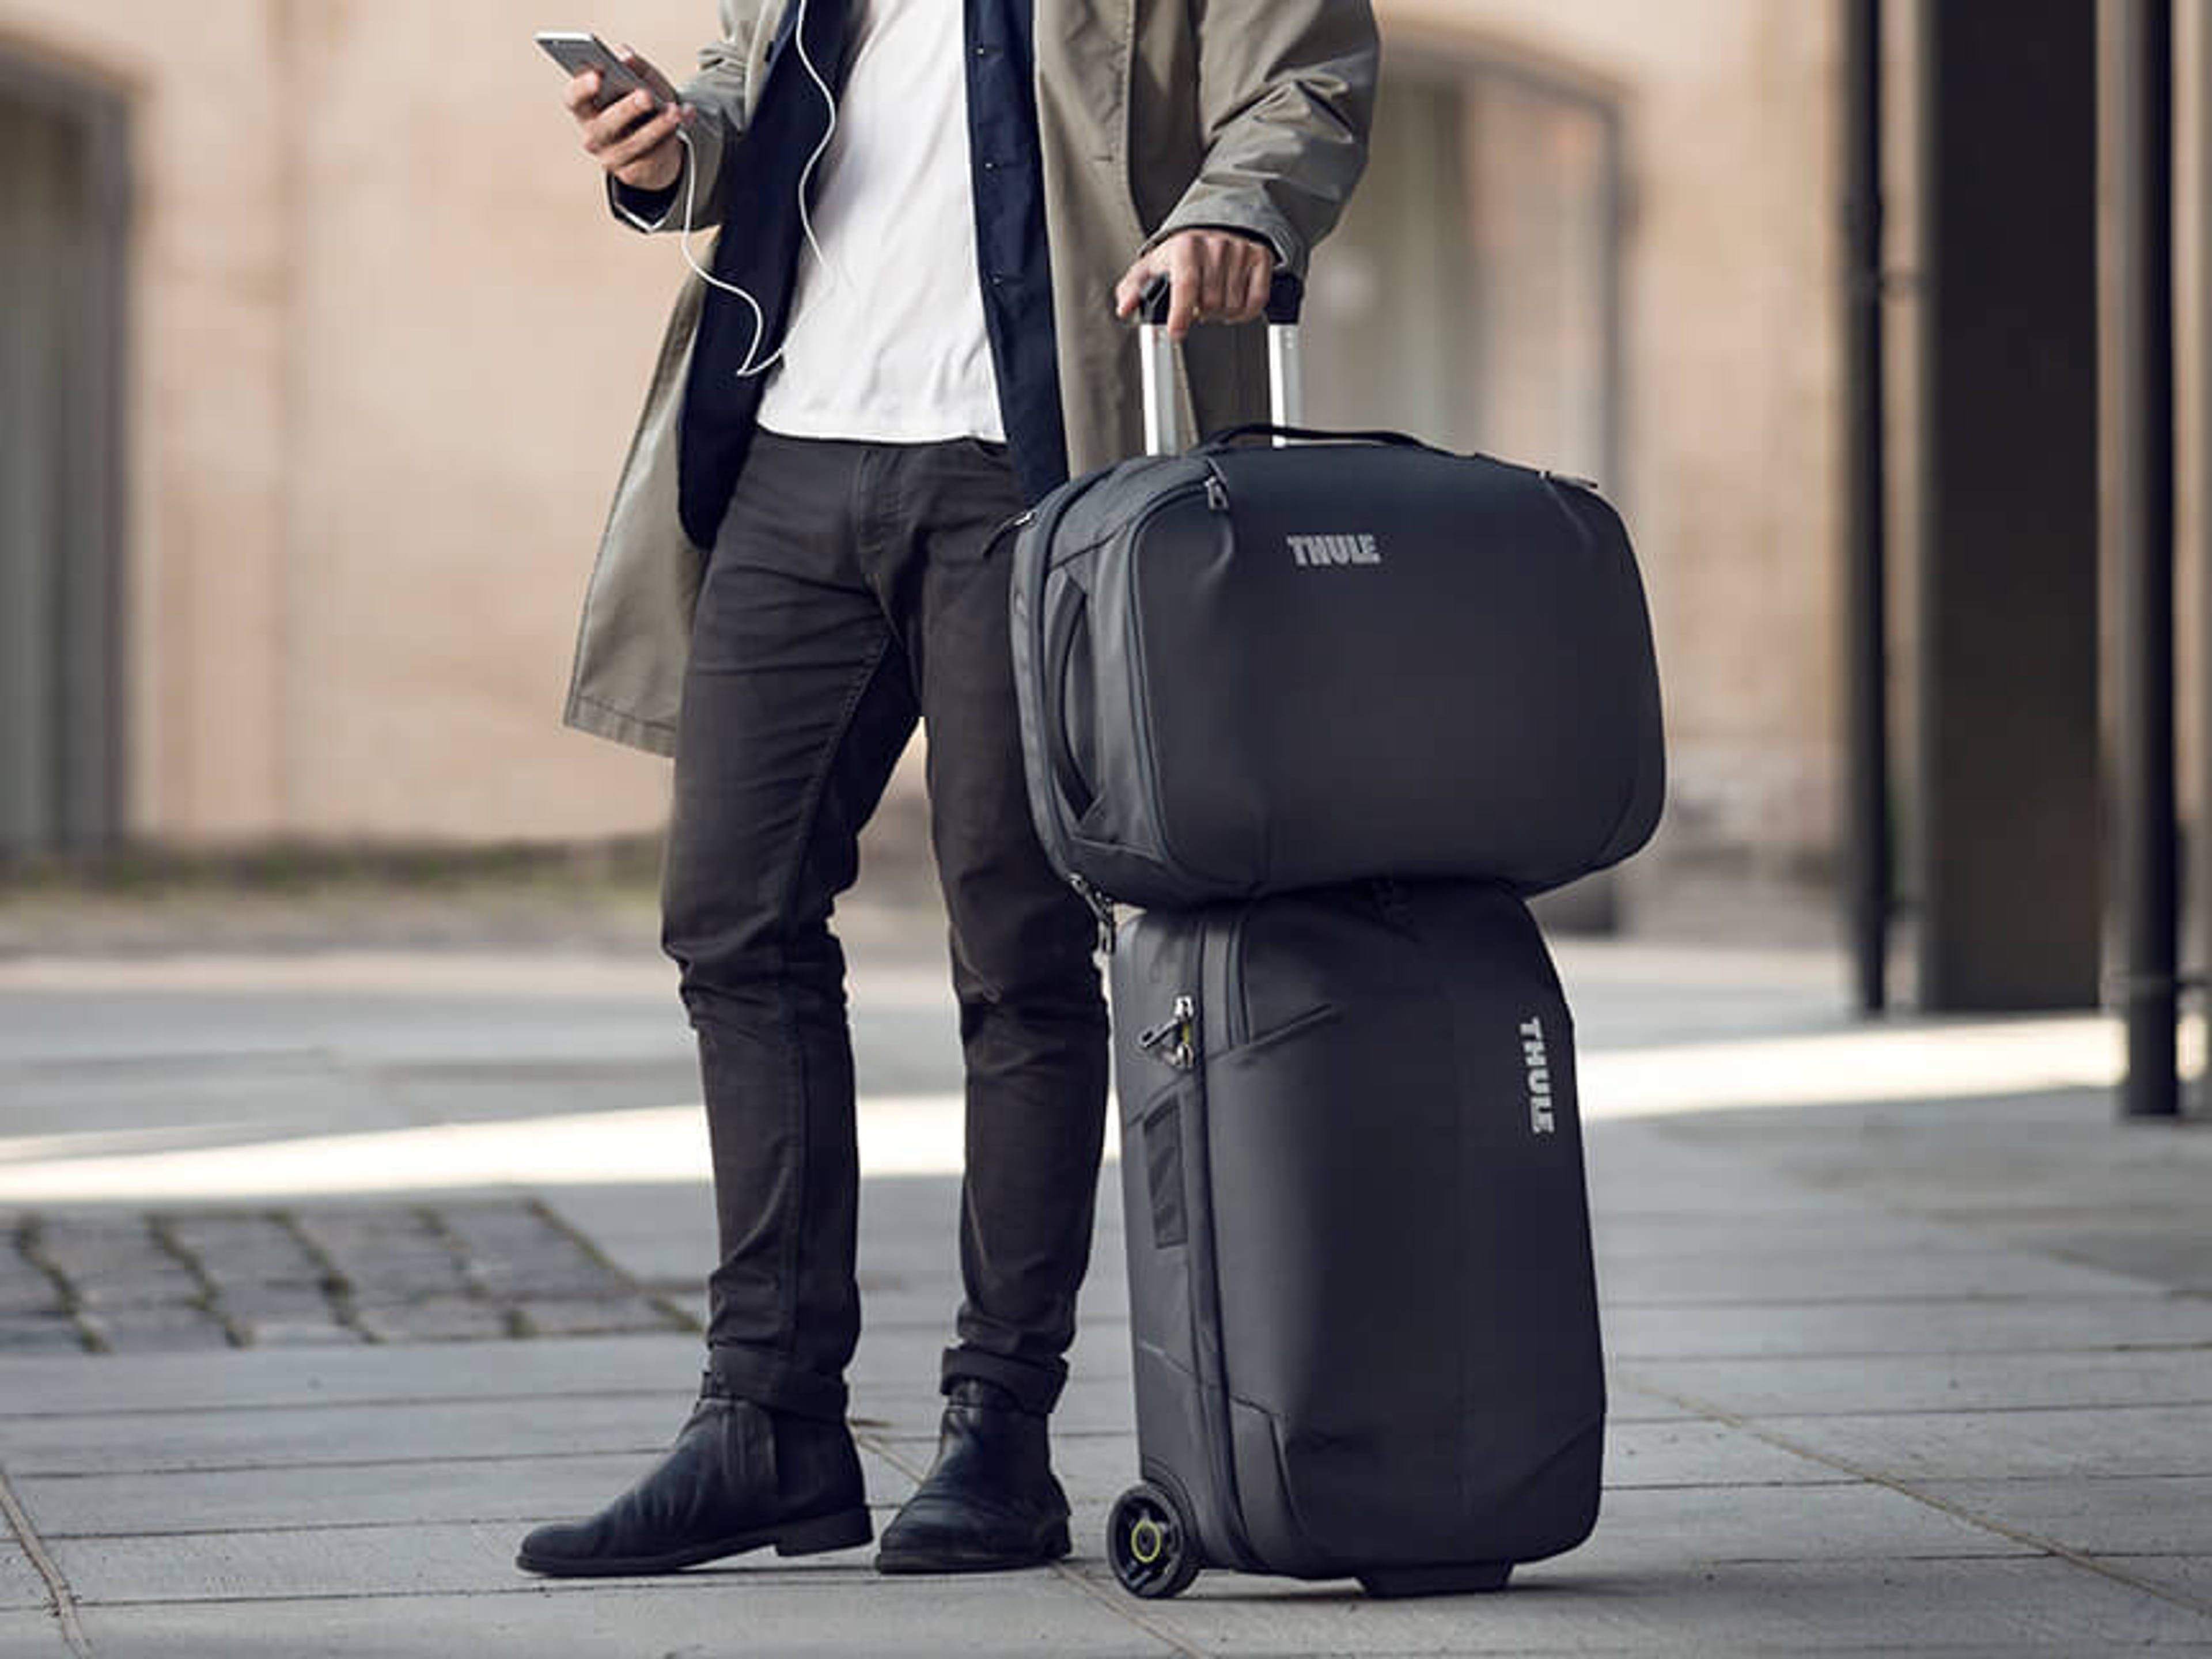 Mid Size & Lightweight Luggage | Best Buy Canada